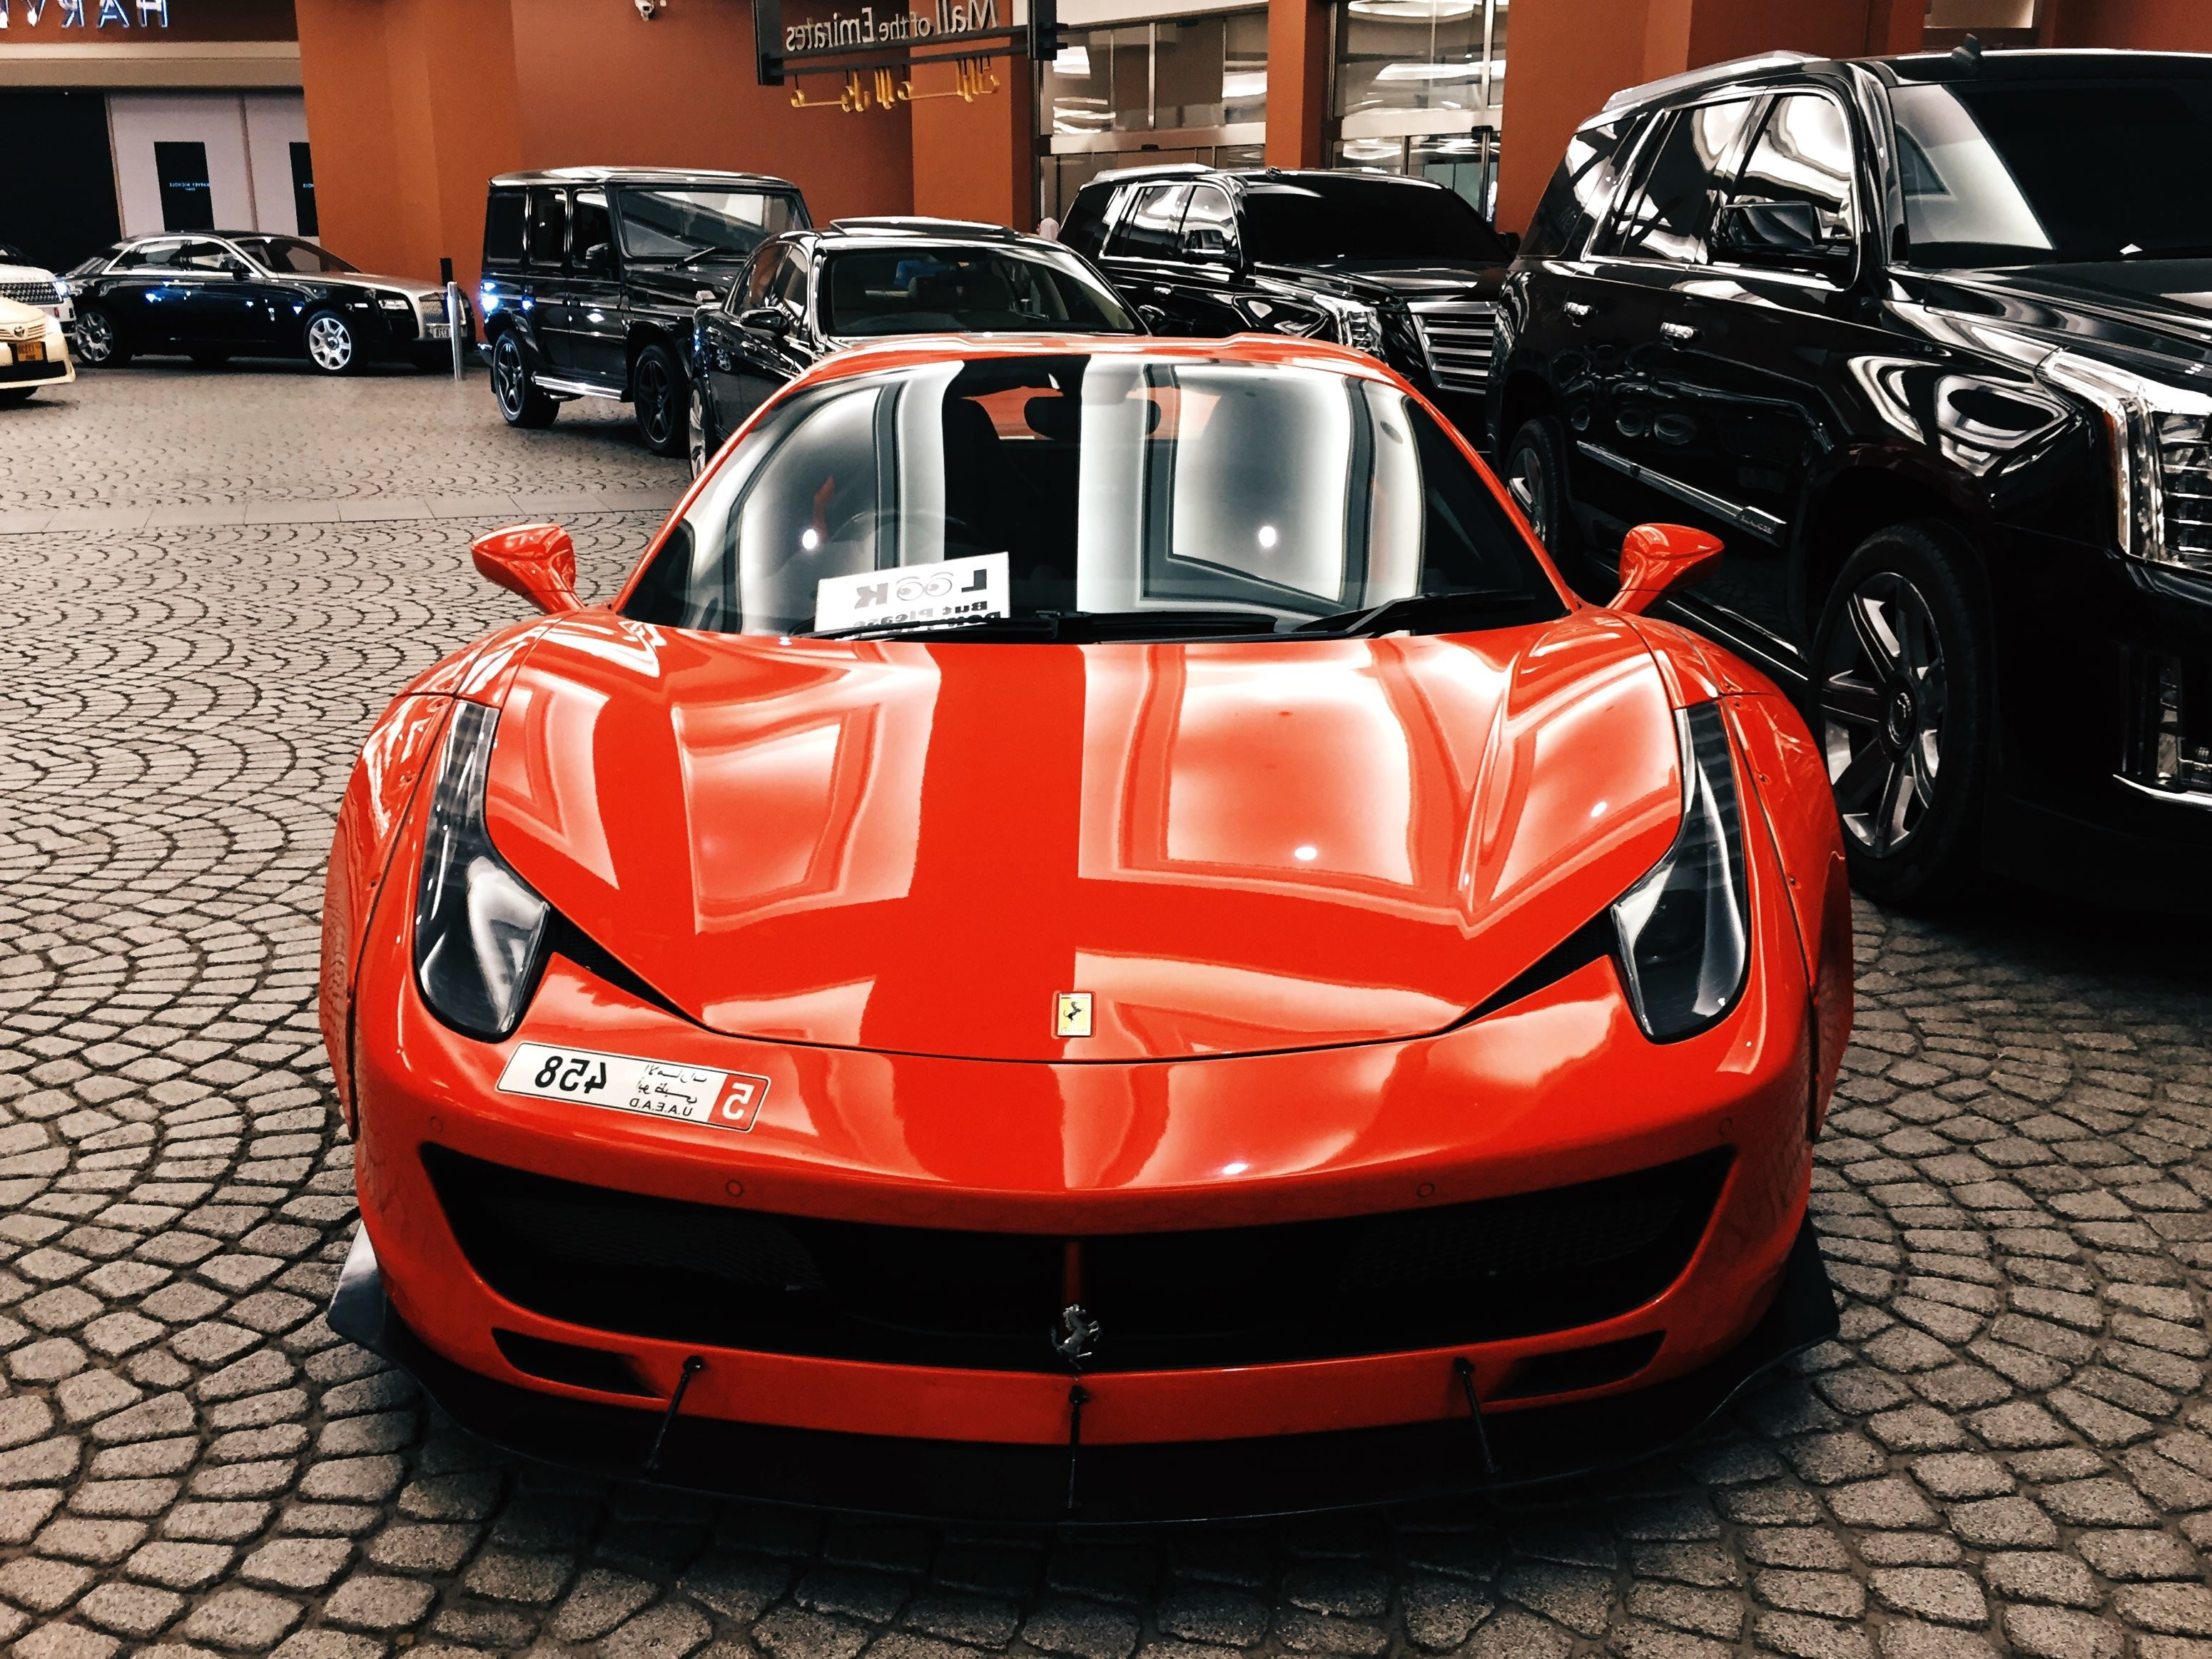 Red Ferrari Car, Vehicle, Wheels, Sport Car, Windshield